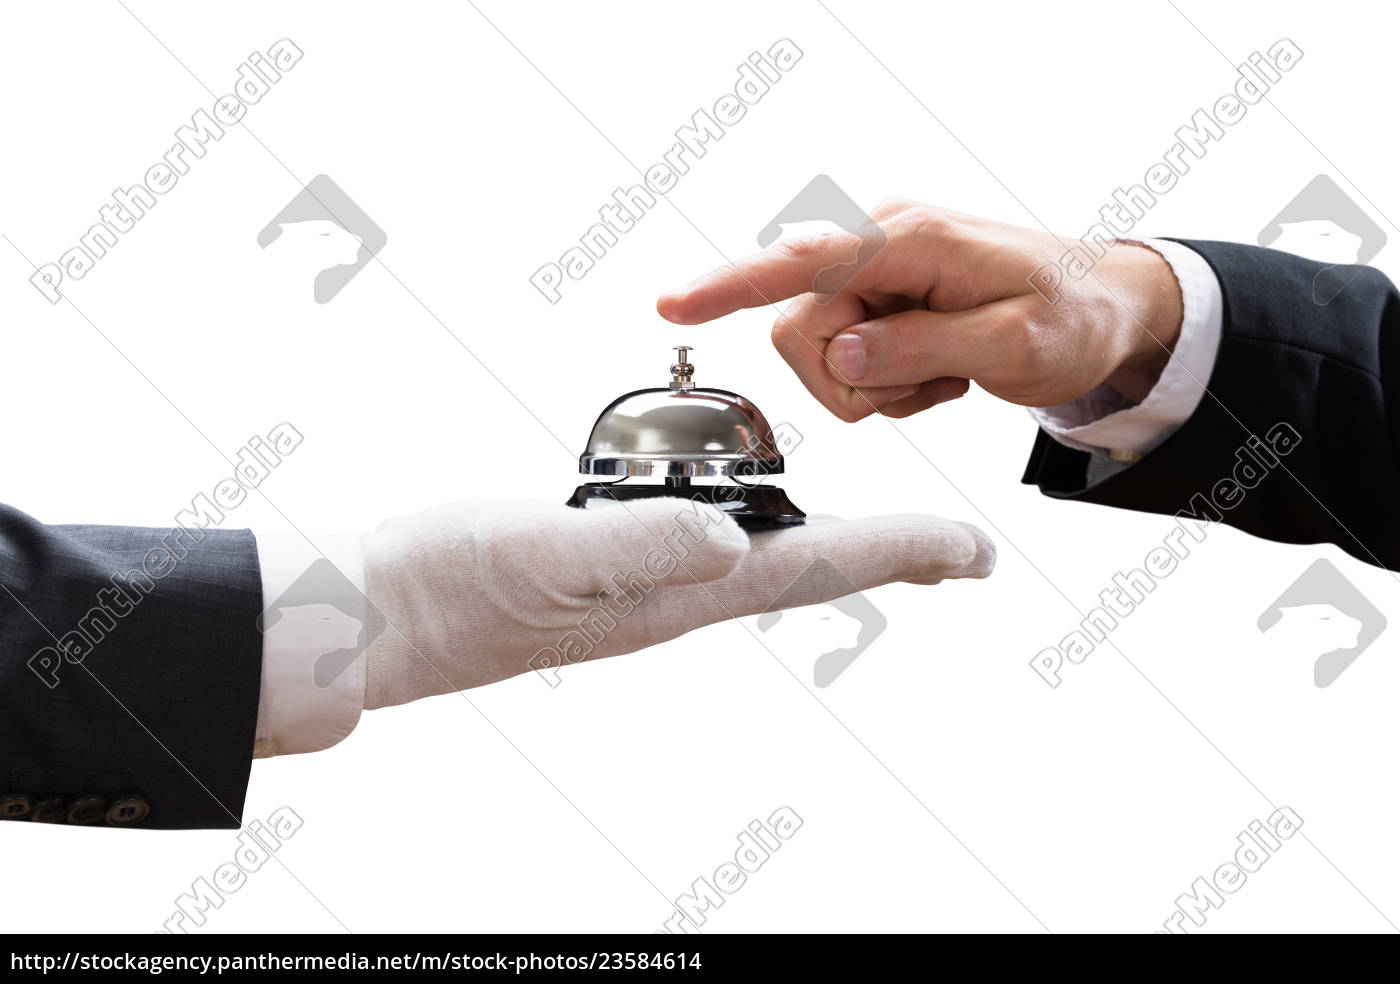 person's, hand, ringing, service, bell, held - 23584614